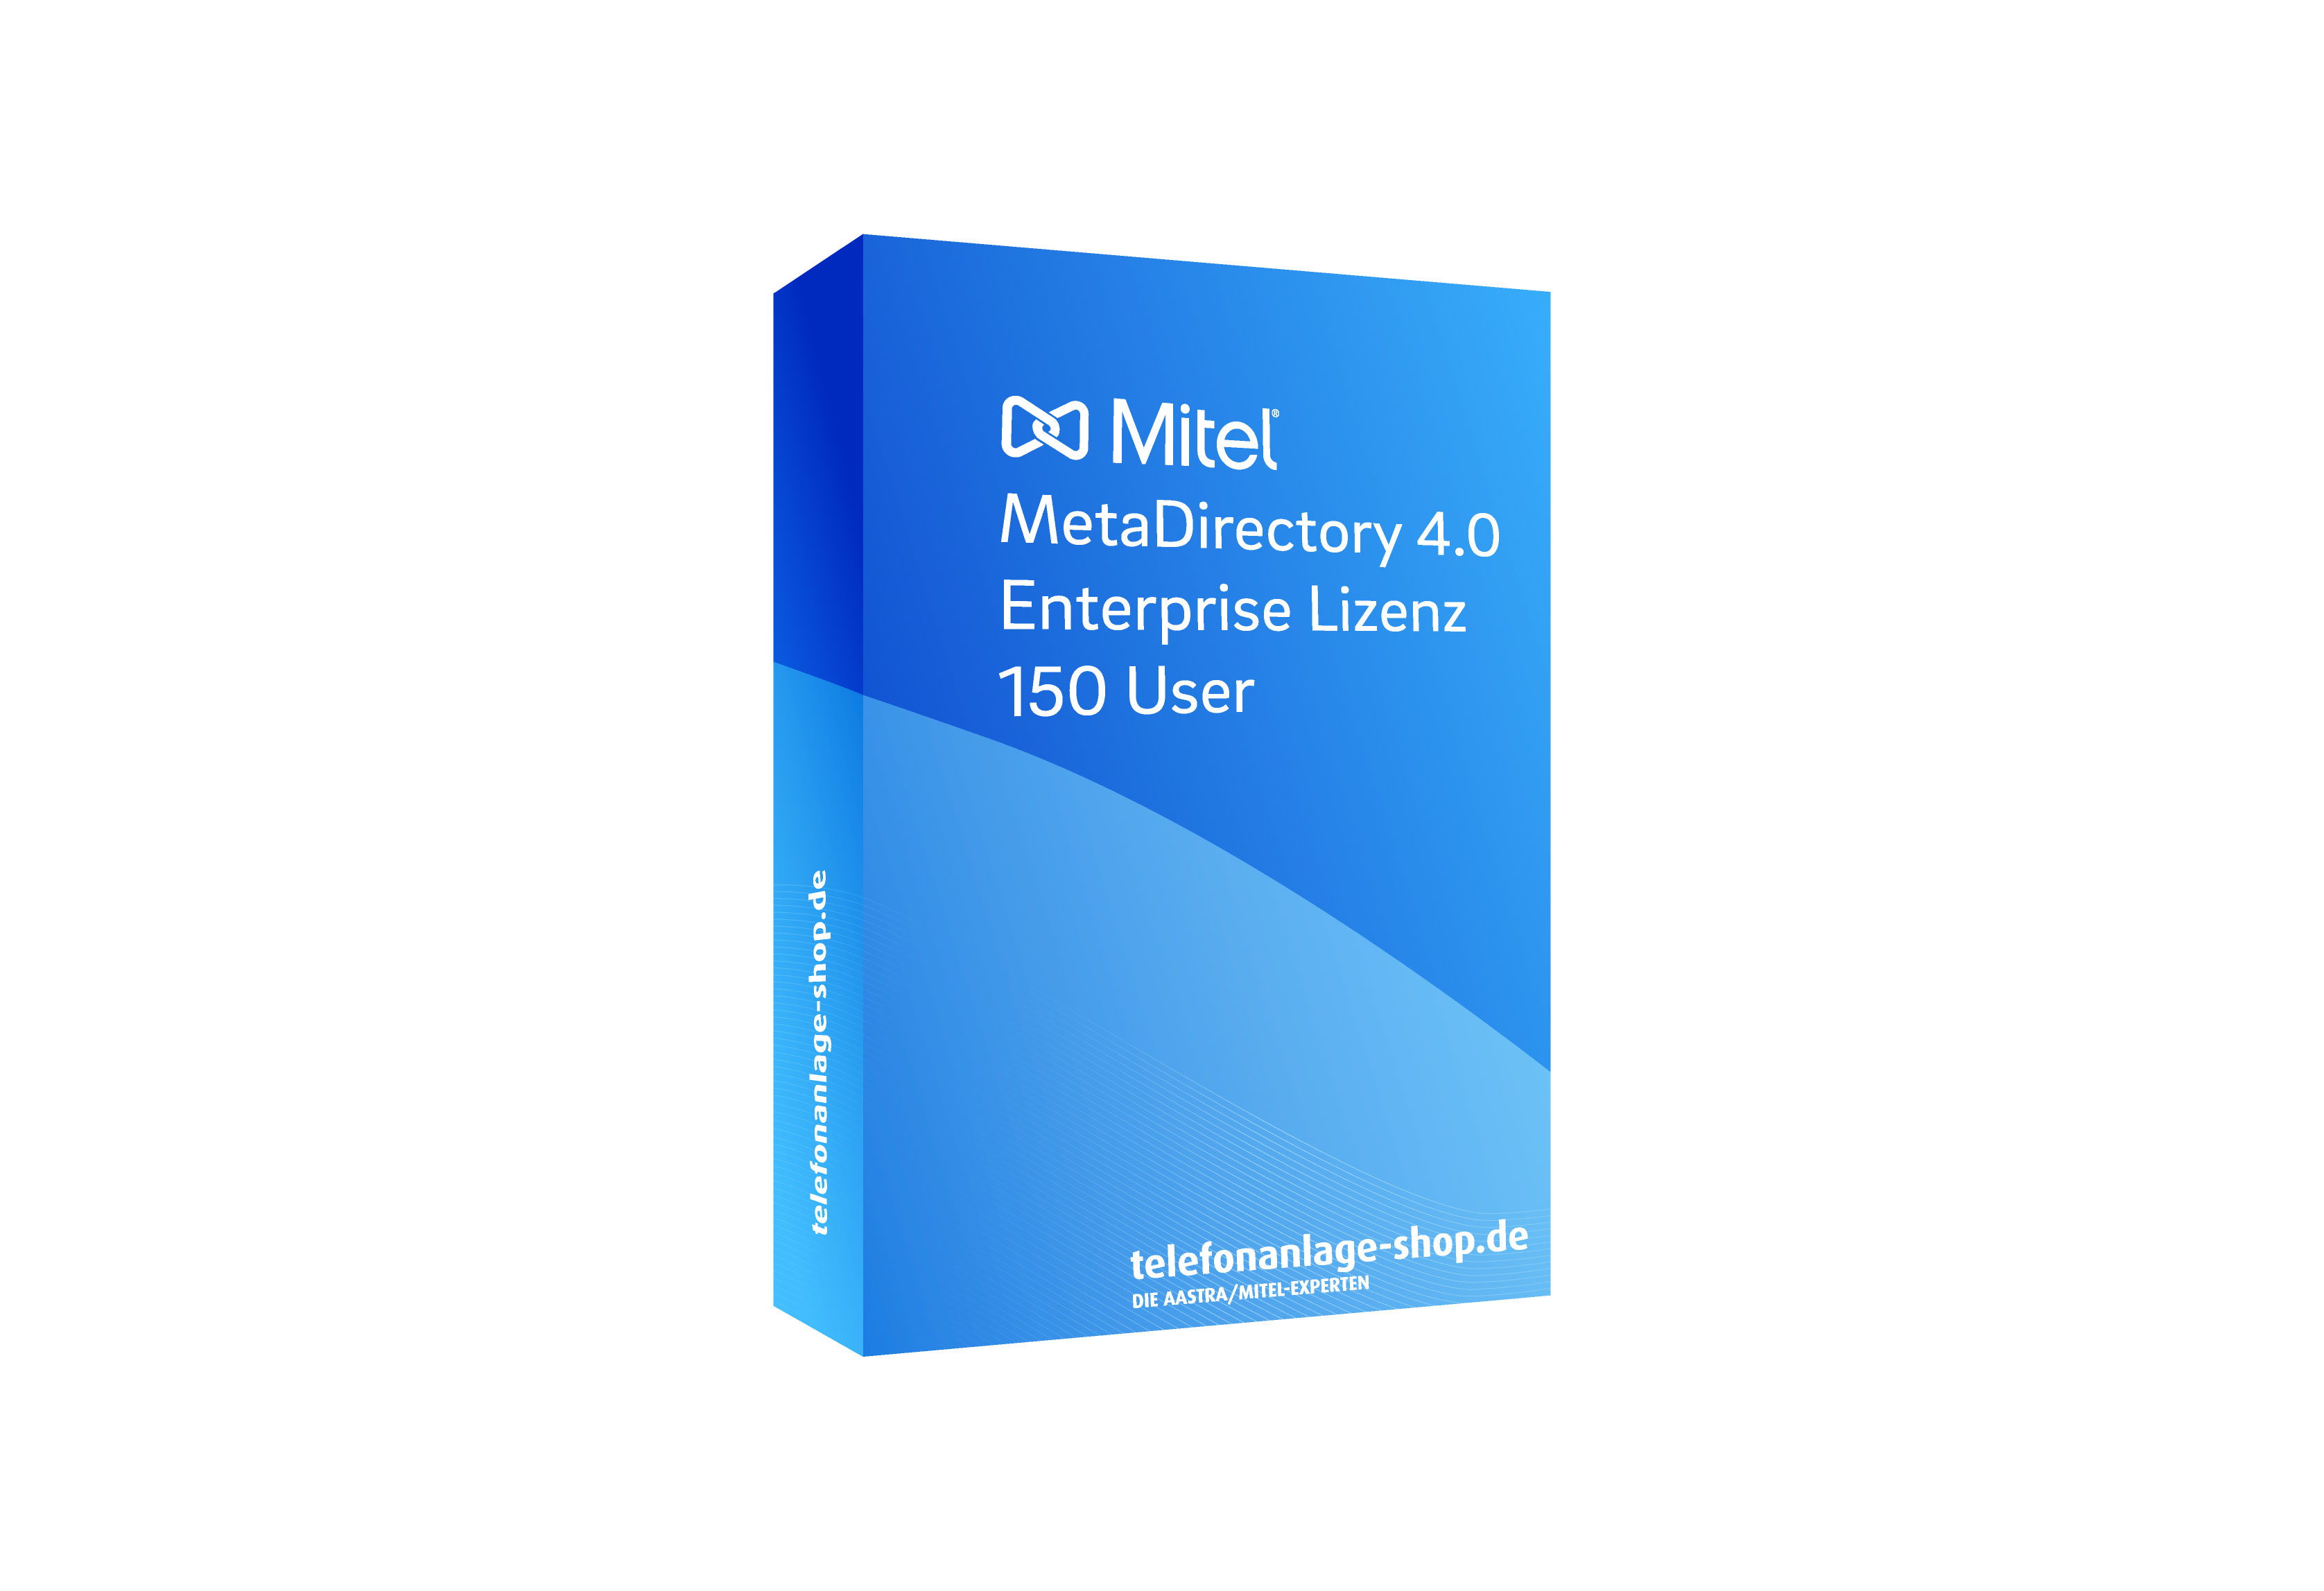 Produktbild - Mitel MetaDirectory 4.0 Enterprise Lizenz 150 User